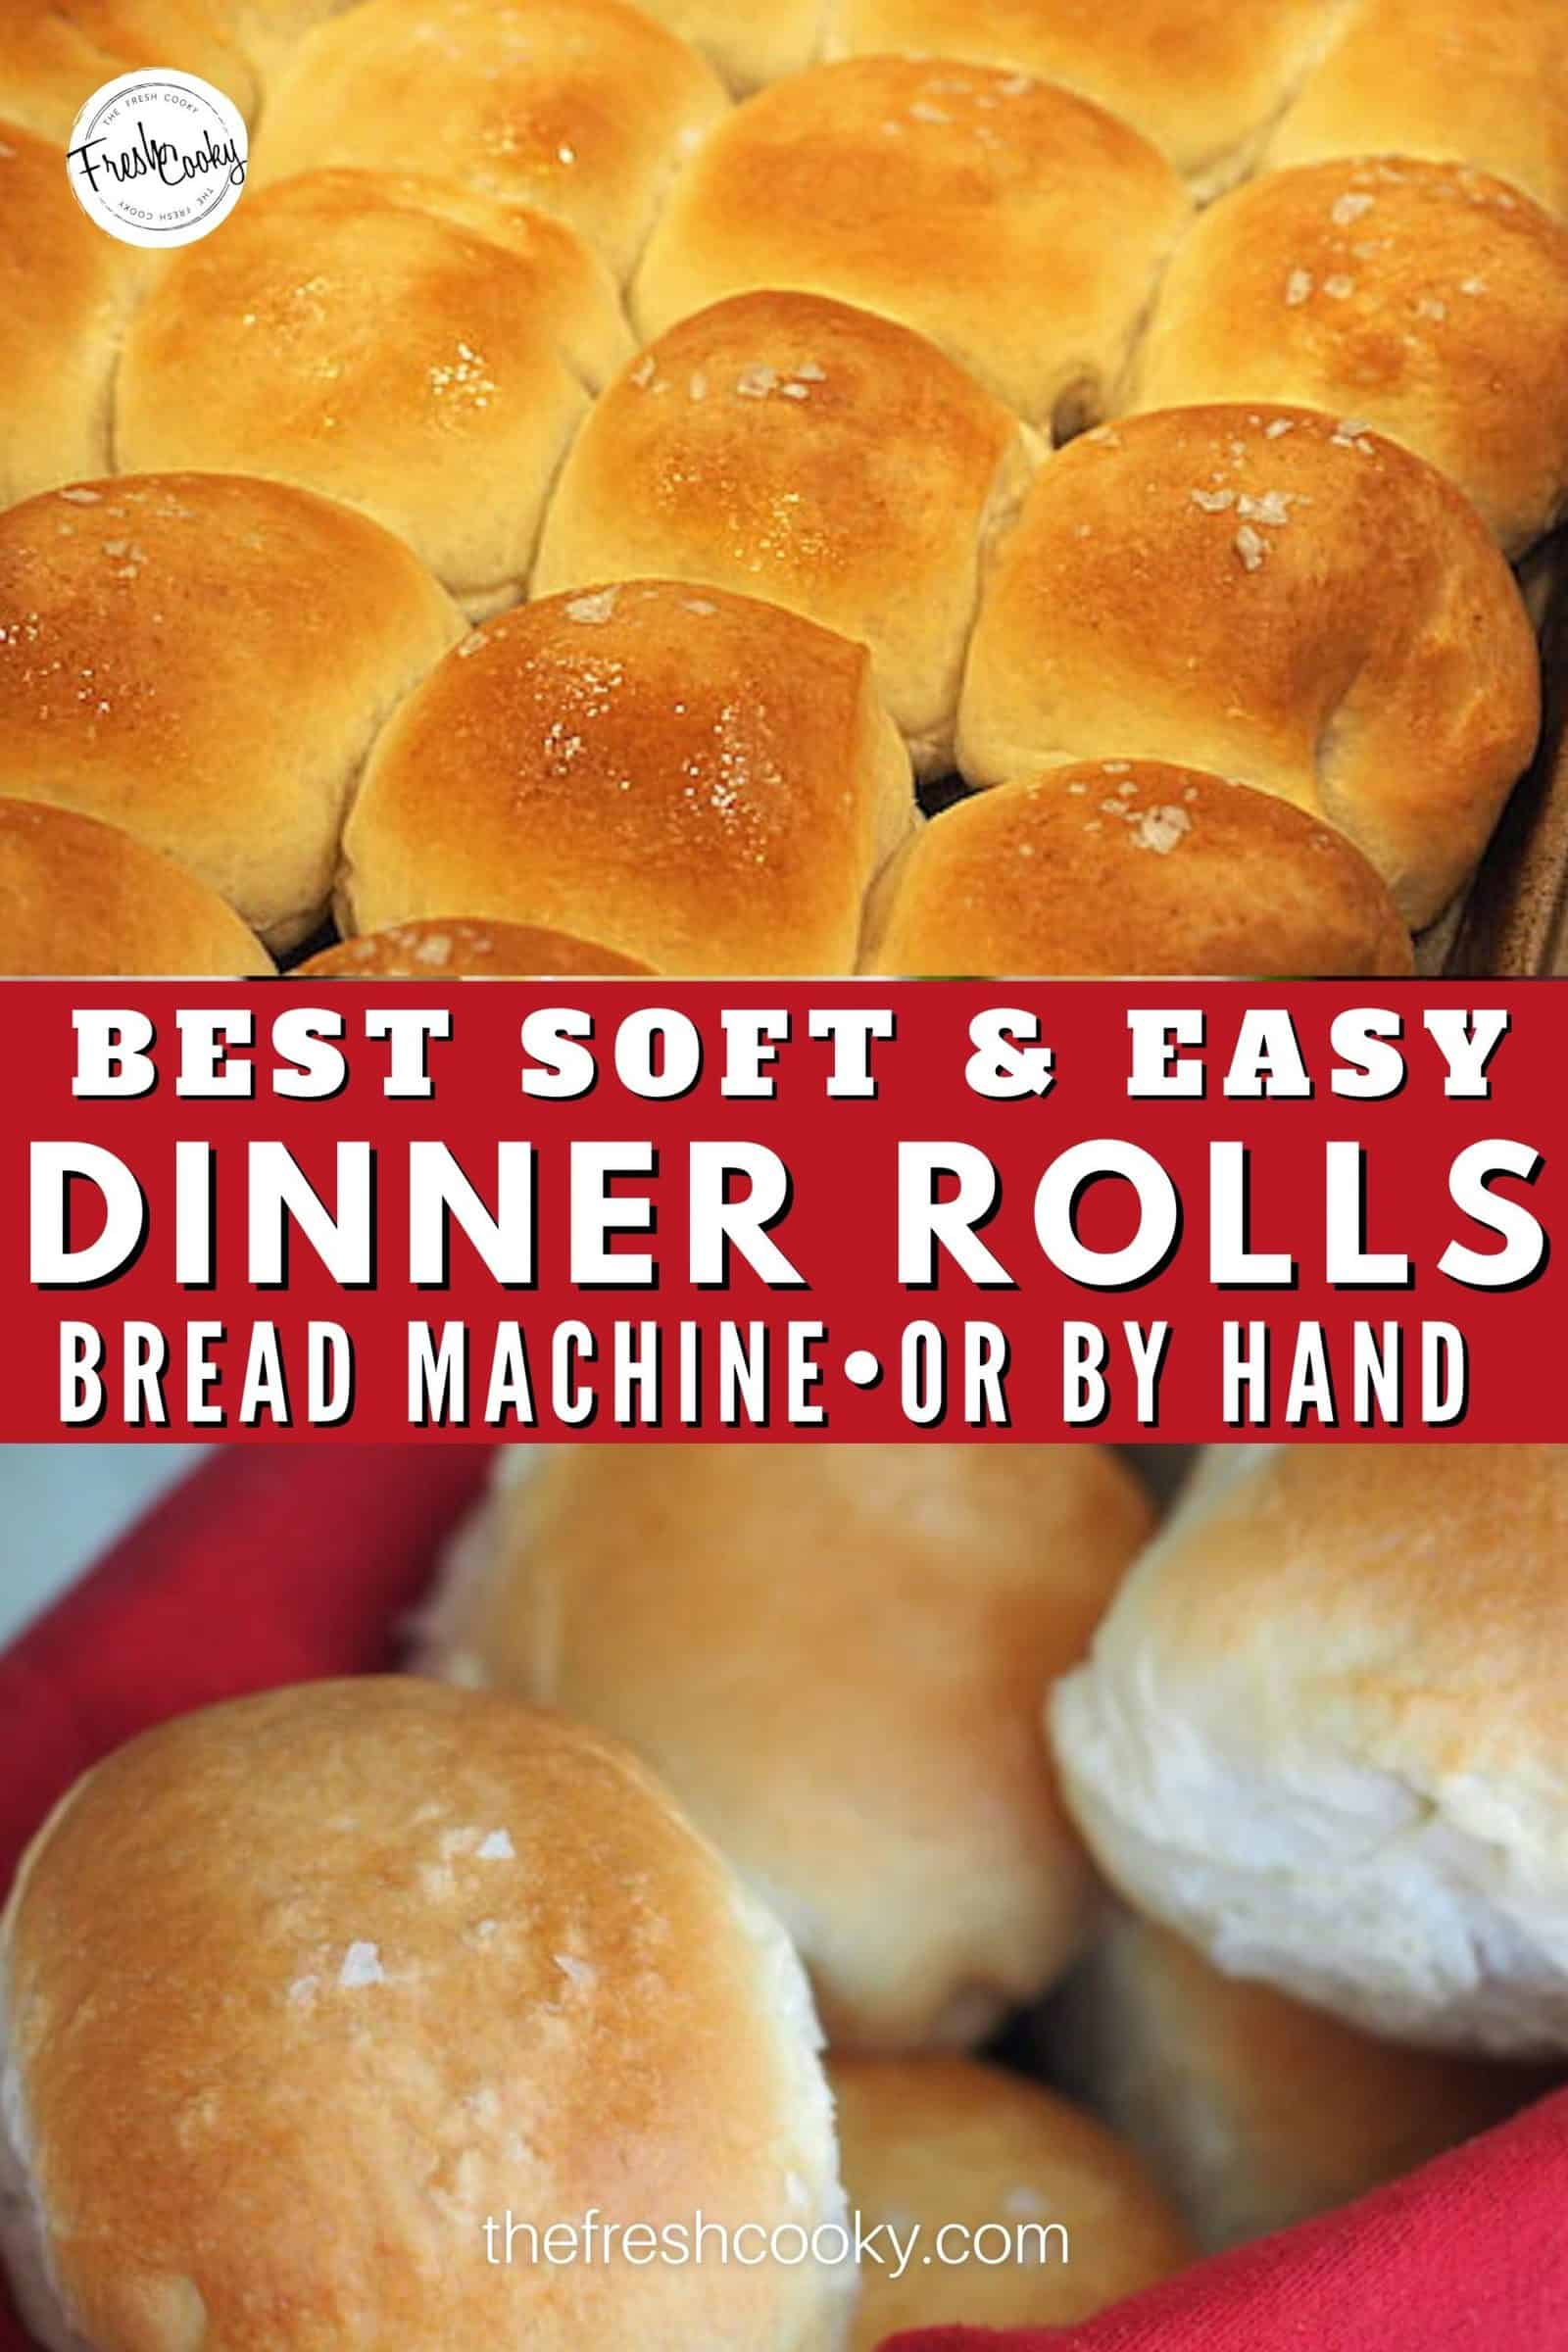 Easy and simple, the best yeast dinner rolls -- start in your bread machine, finish in the oven for perfect dinner rolls every single time! Great for holiday meals, like Thanksgiving, Christmas, Easter or anytime you need a soft, buttery, dinner roll. #thefreshcooky #bestdinnerrolls #holidayrecipes via @thefreshcooky